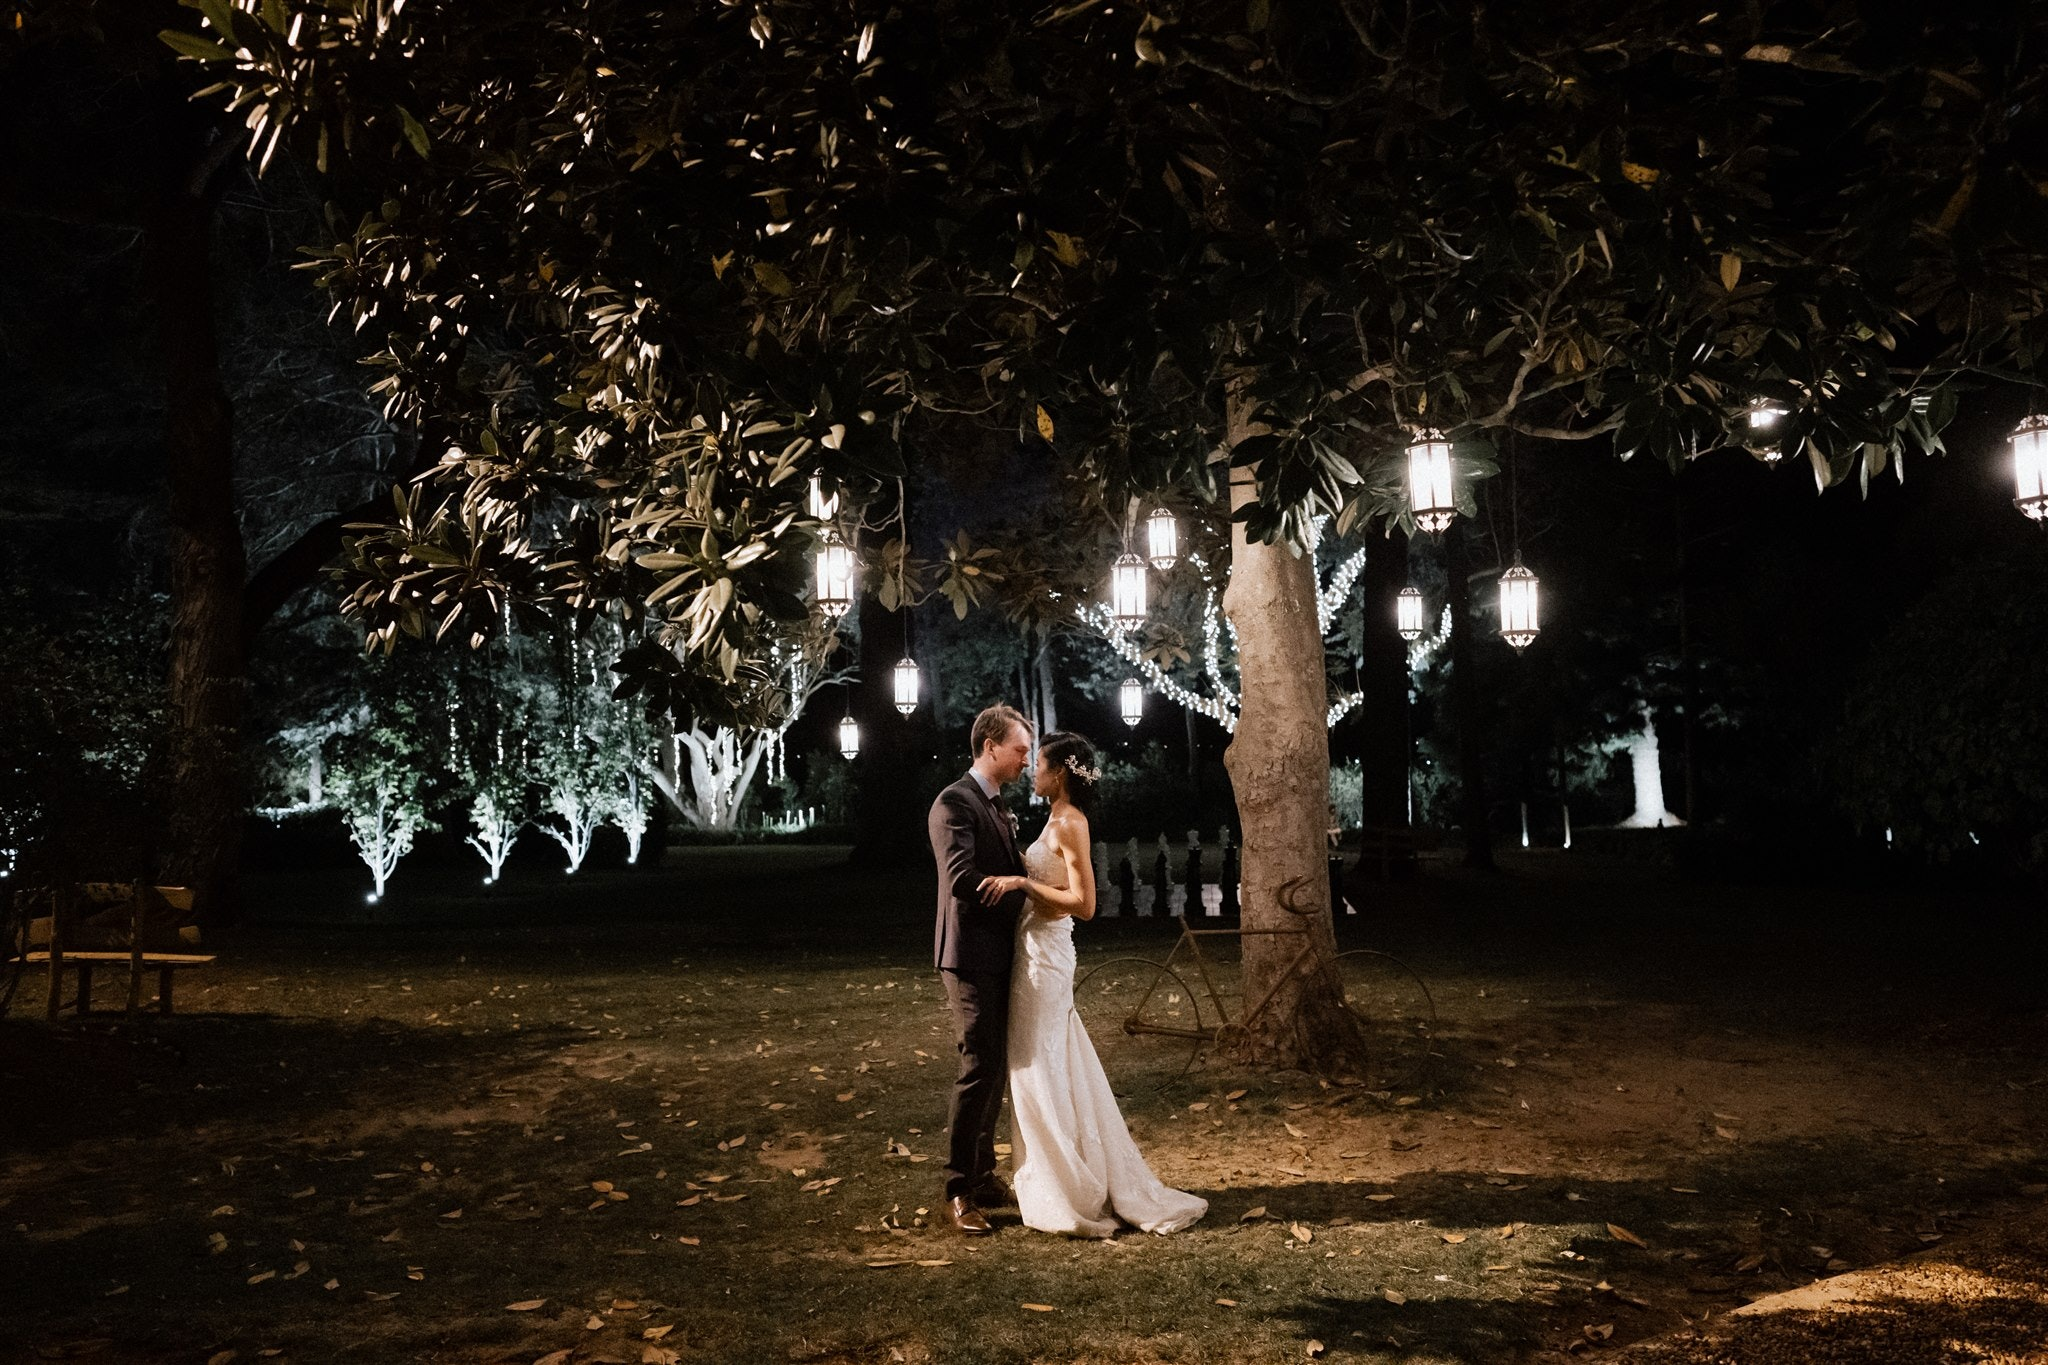 Couple dance under magnolia tree with lights at night